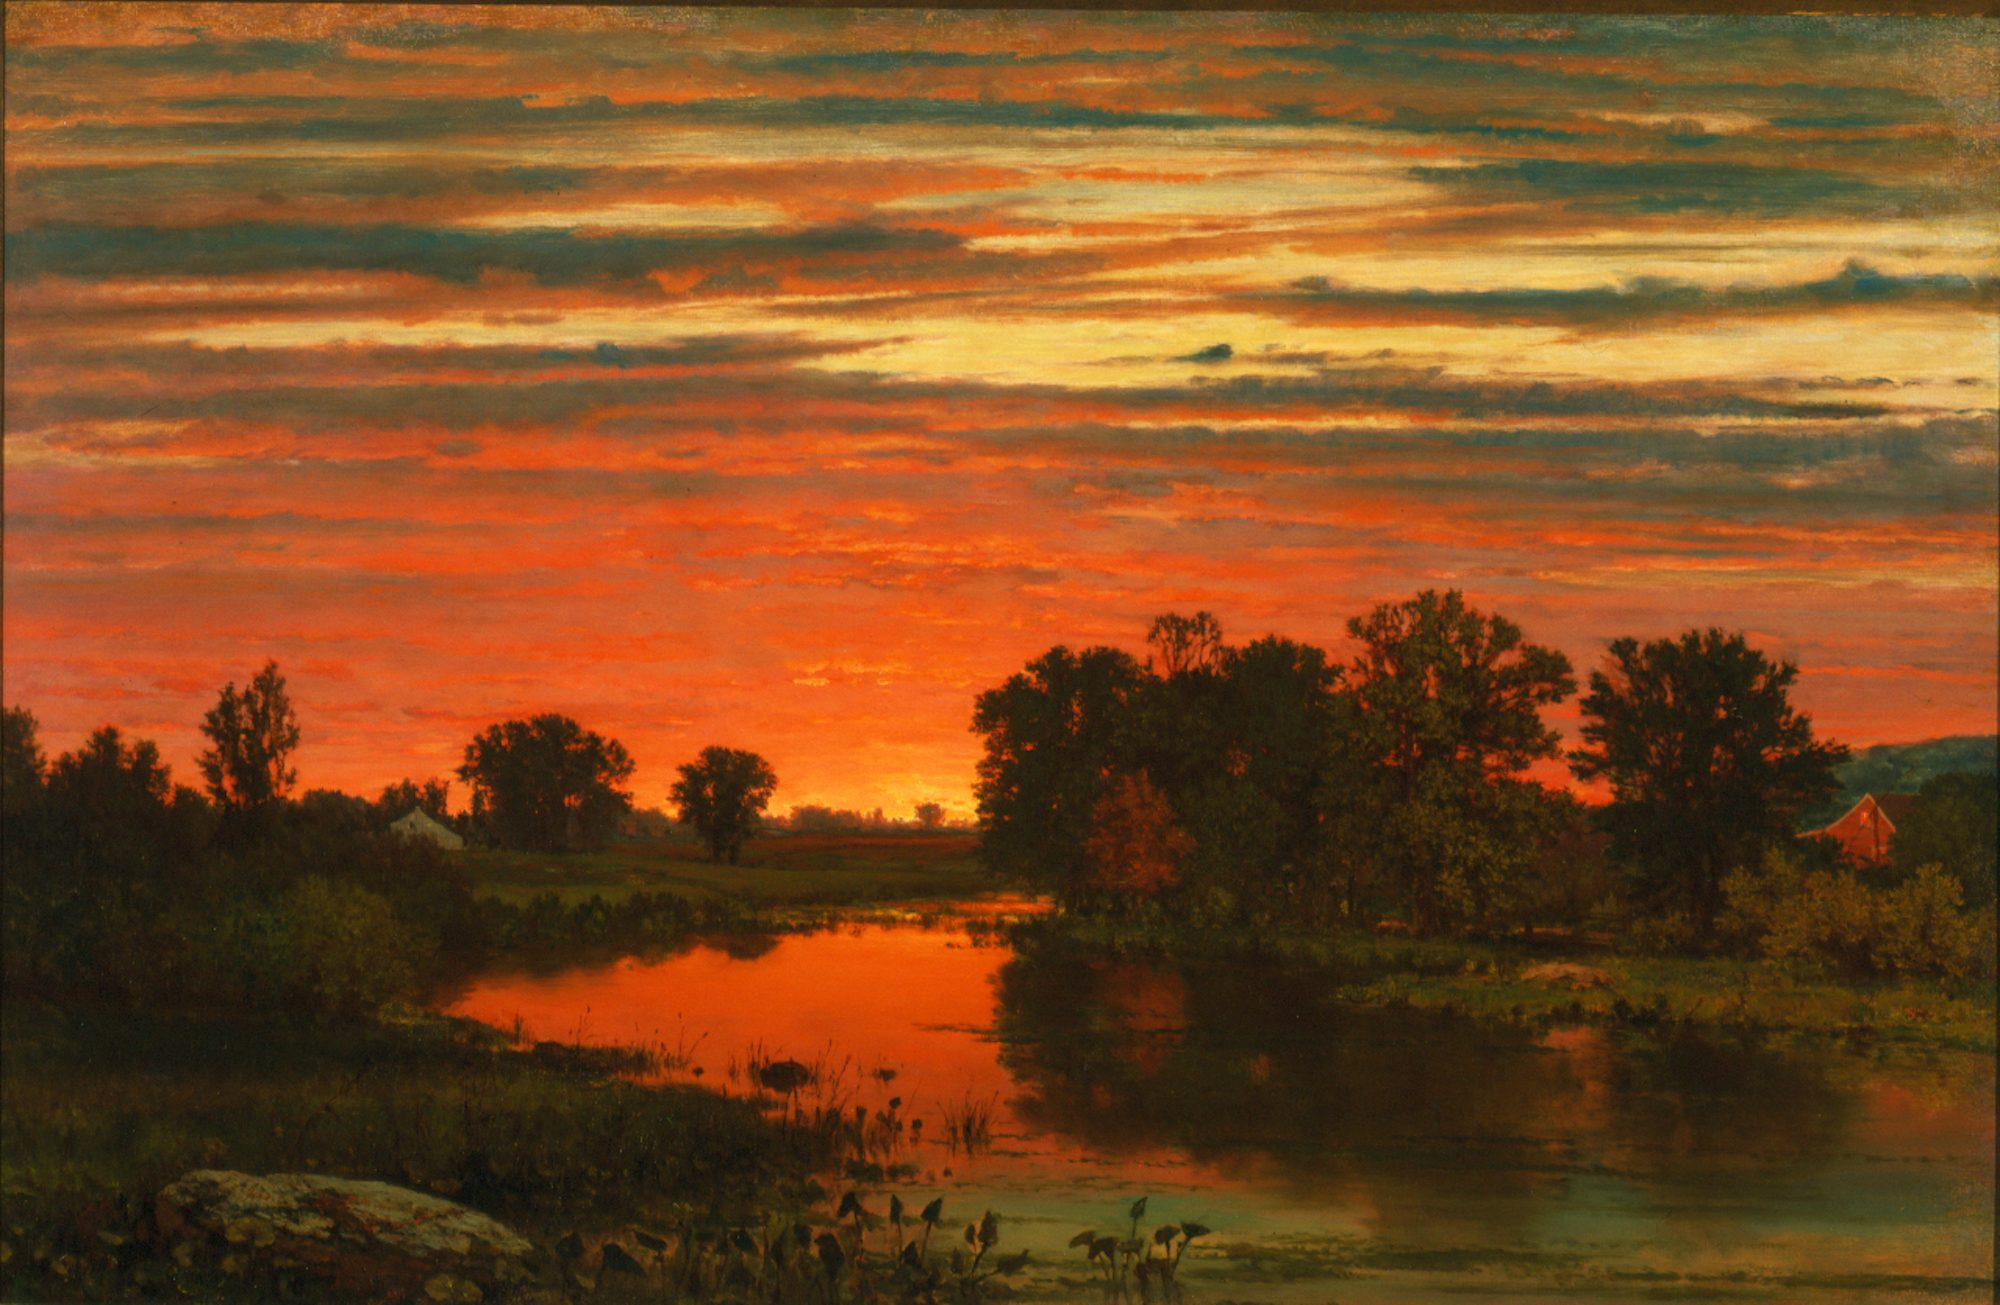 George Inness (American, 1825–1894) Twilight, c. 1860. Oil on canvas. Gift of Cyrus P. Smith, Class of 1918, in memory of his father, B. Herbert Smith, Class of 1885, 79.66